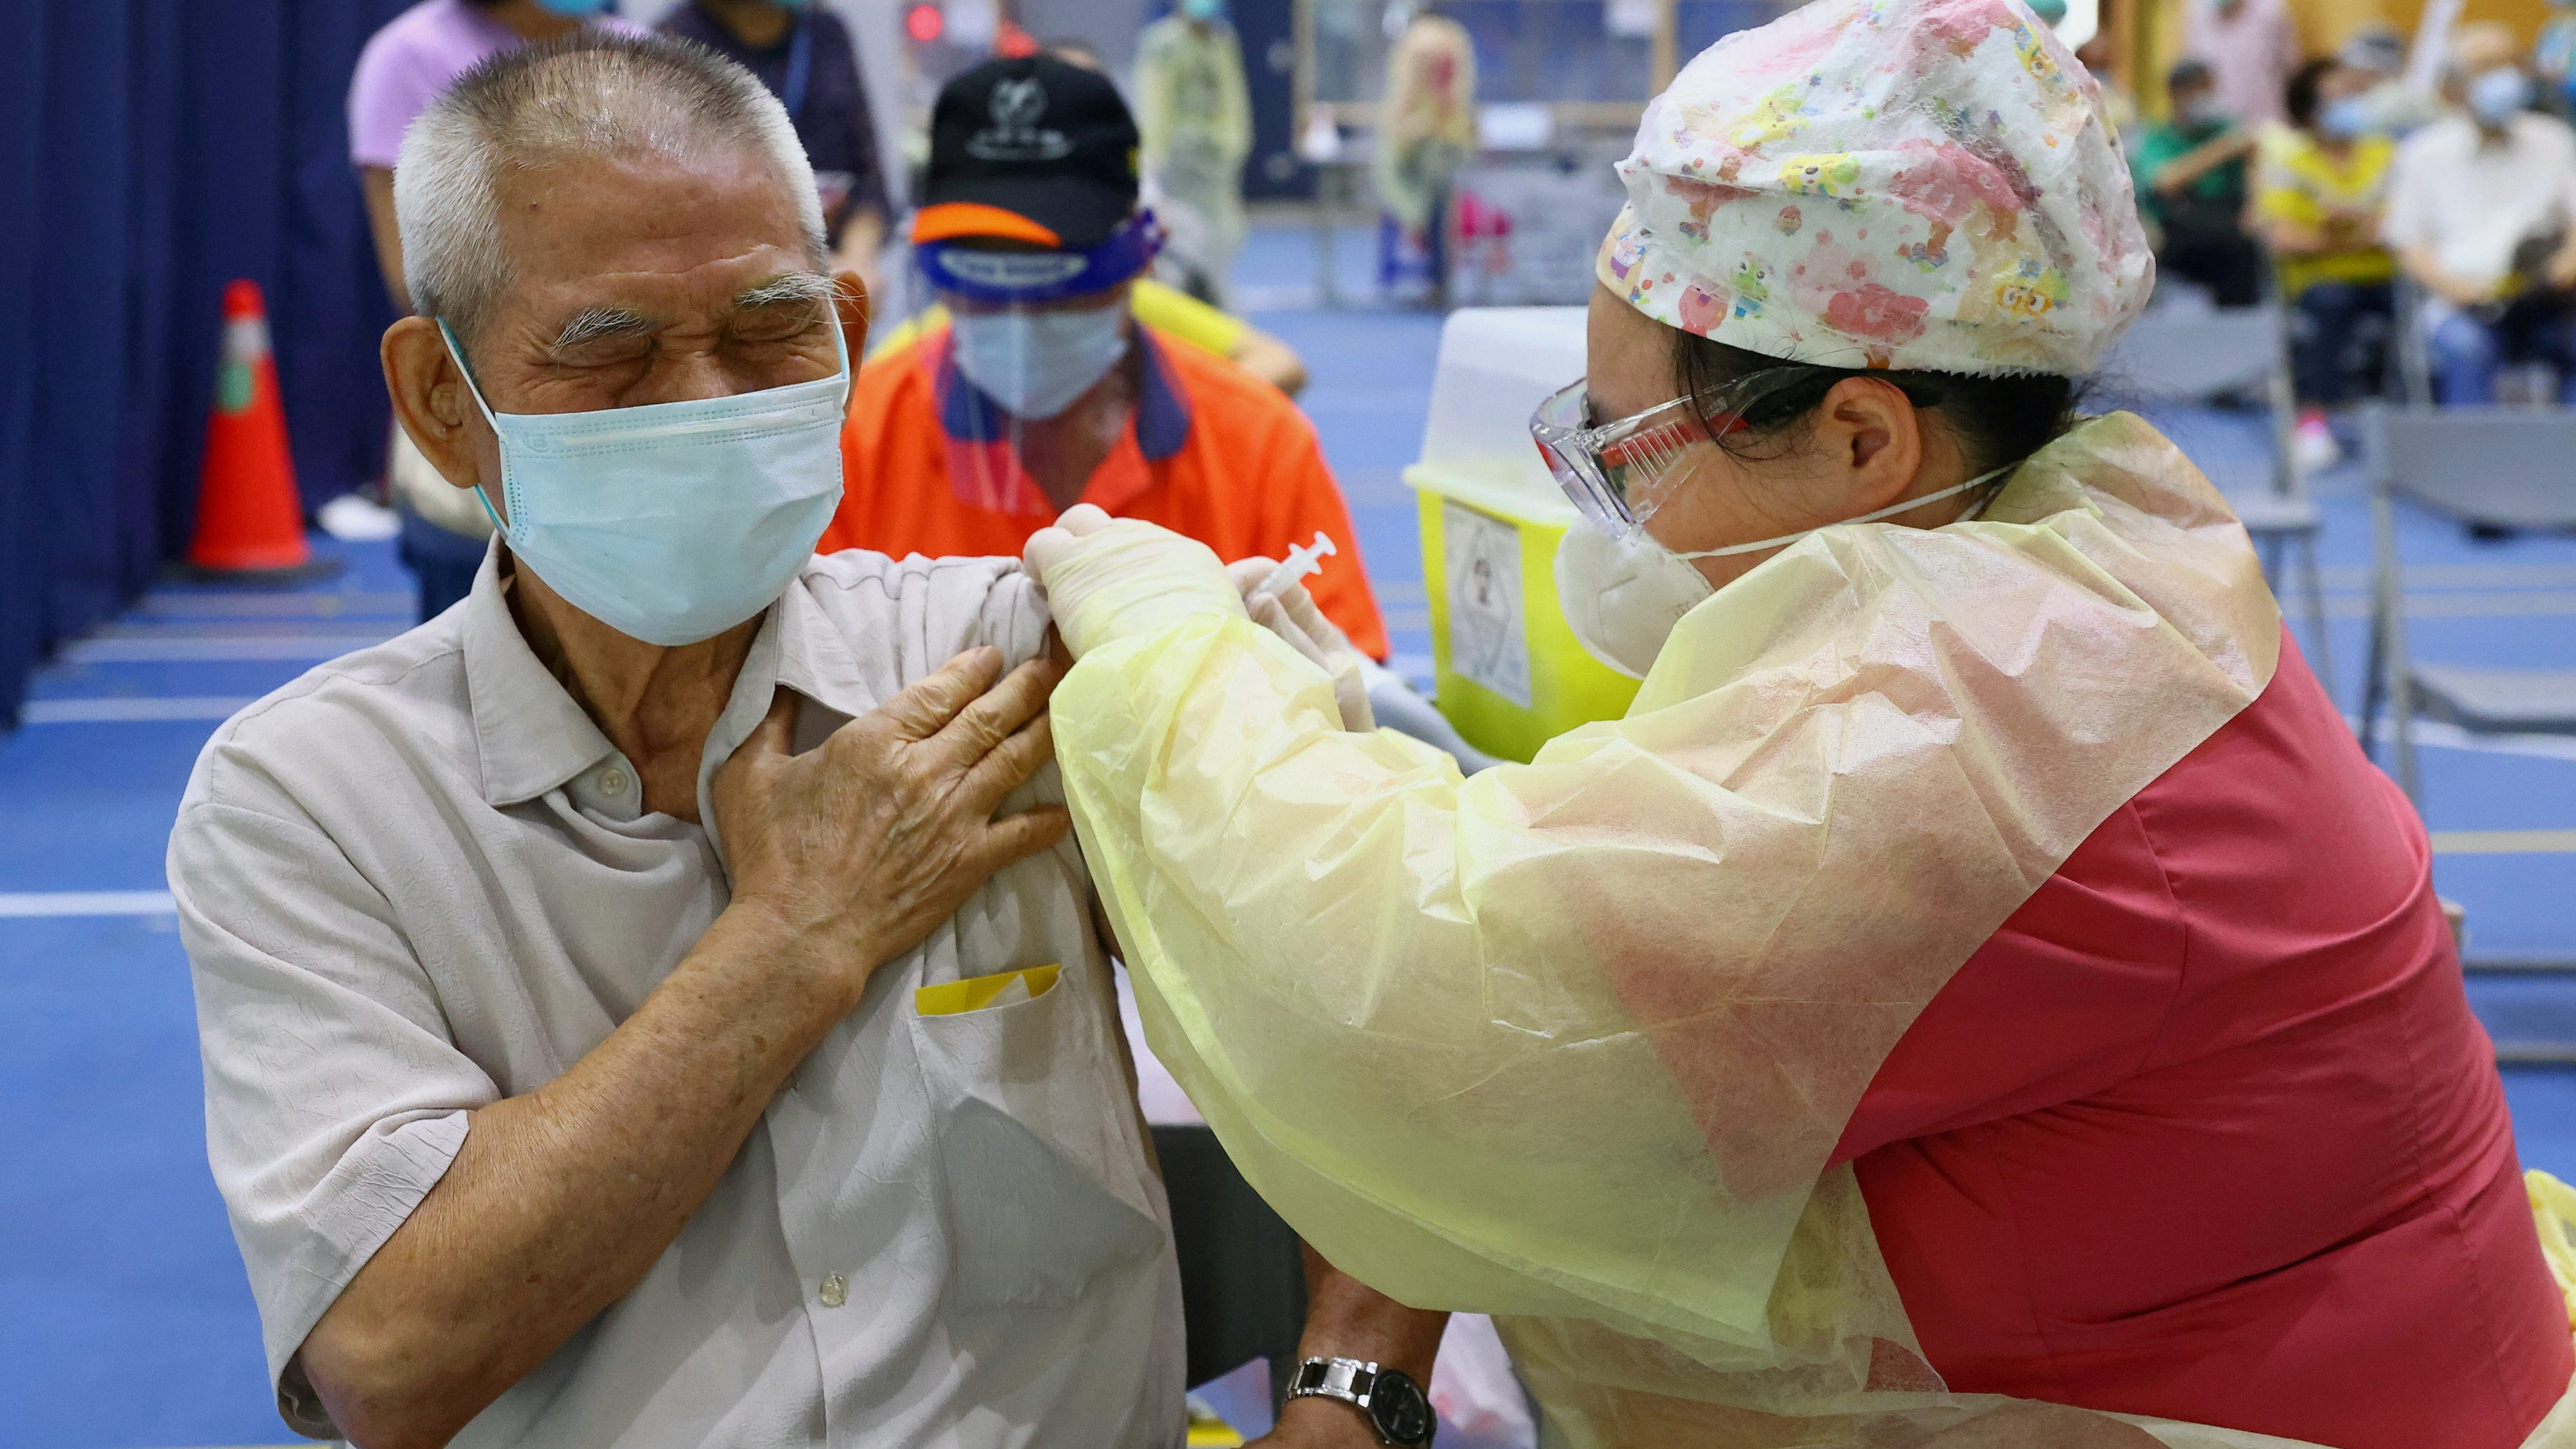 FILE PHOTO: A medical worker administers a dose of the AstraZeneca vaccine against the coronavirus disease (COVID-19) to a man during a vaccination session for elderly people over 75 years old, at a stadium in New Taipei City, Taiwan June 25, 2021.